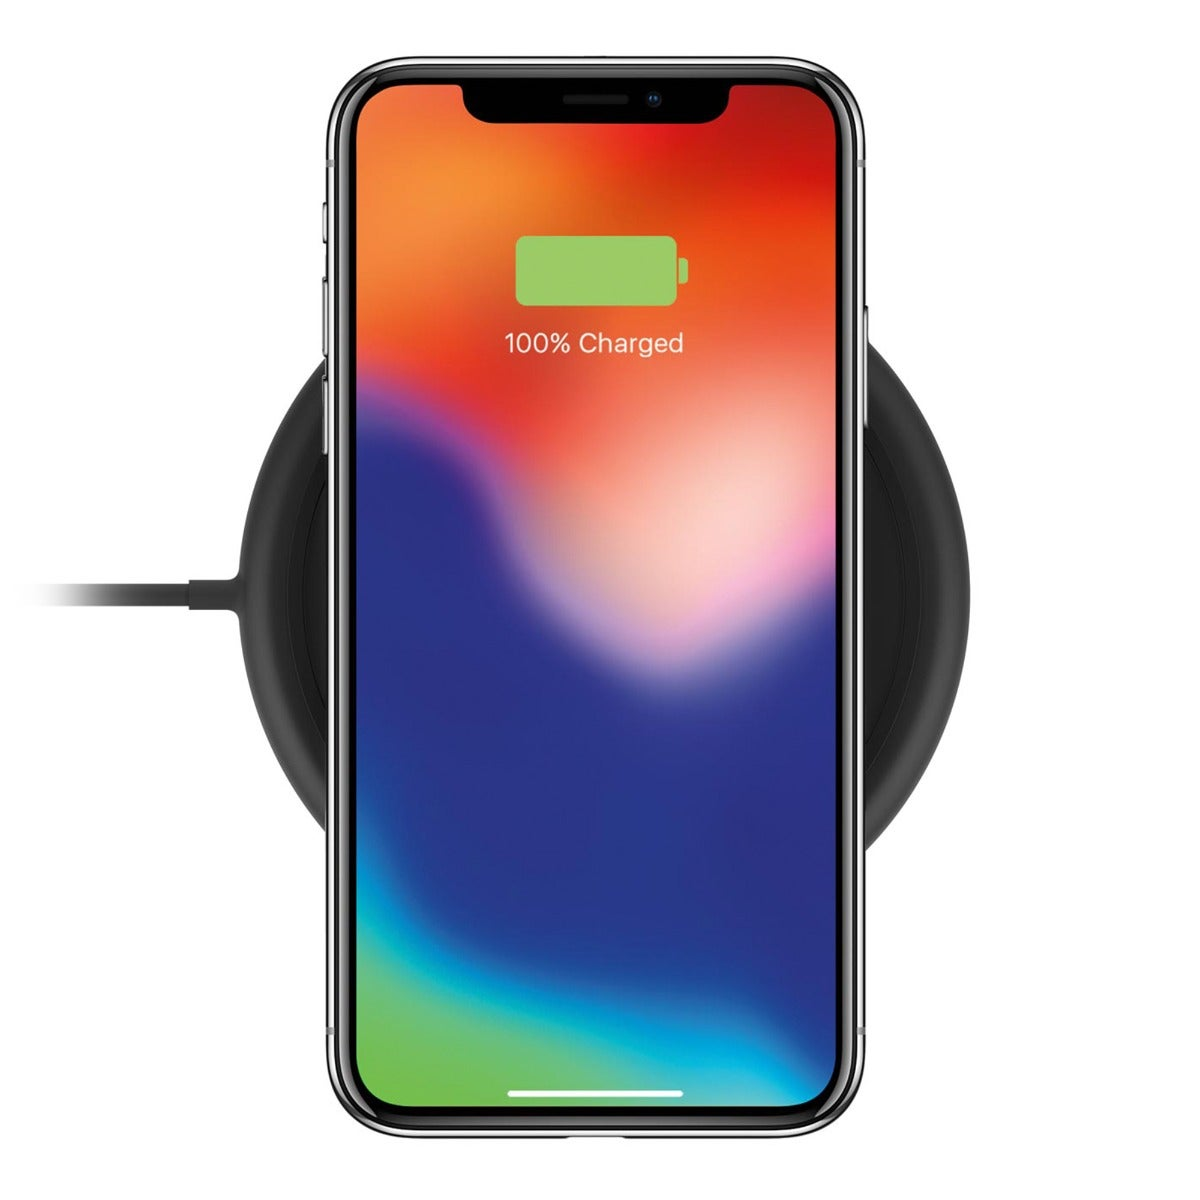 wireless charging base (Black) - U.S. Wall Adapter